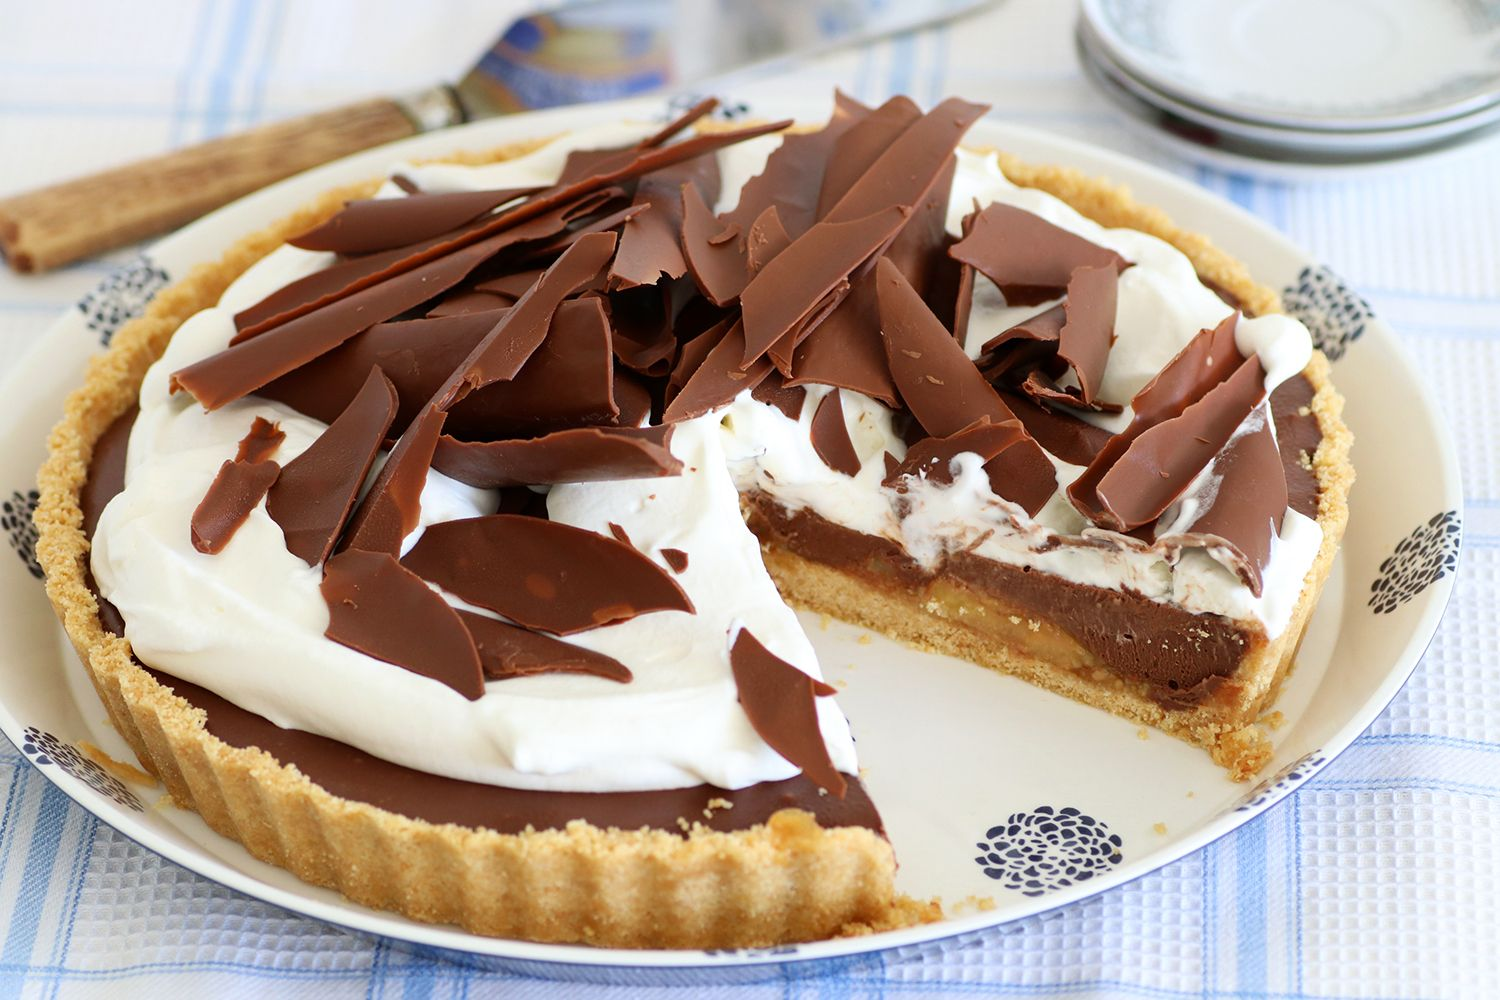 Banana and Chocolate Cream Pie with Whipped Cream